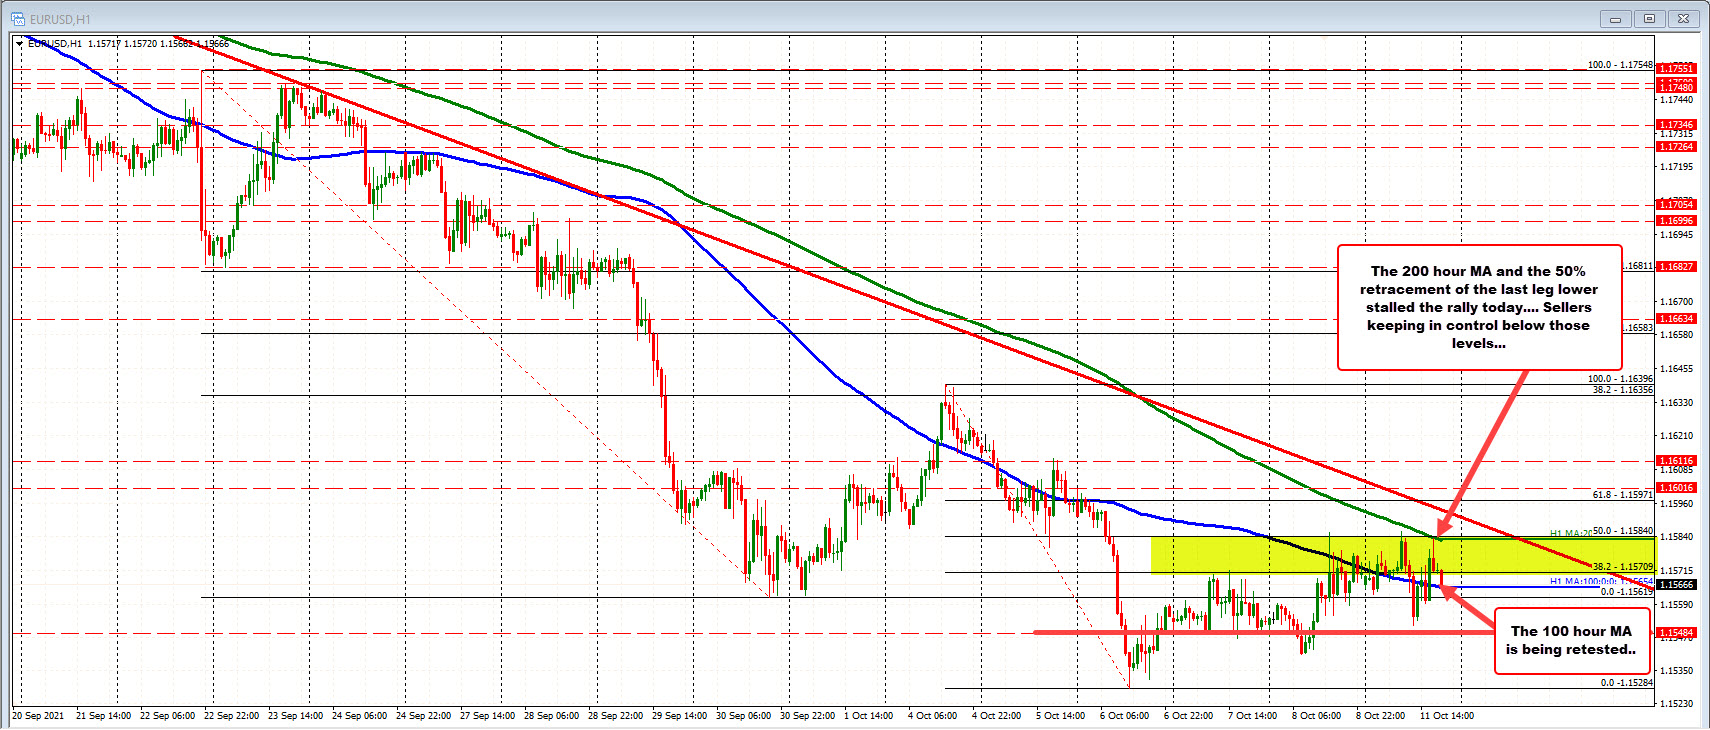 EURUSD remains under wraps by the sellers